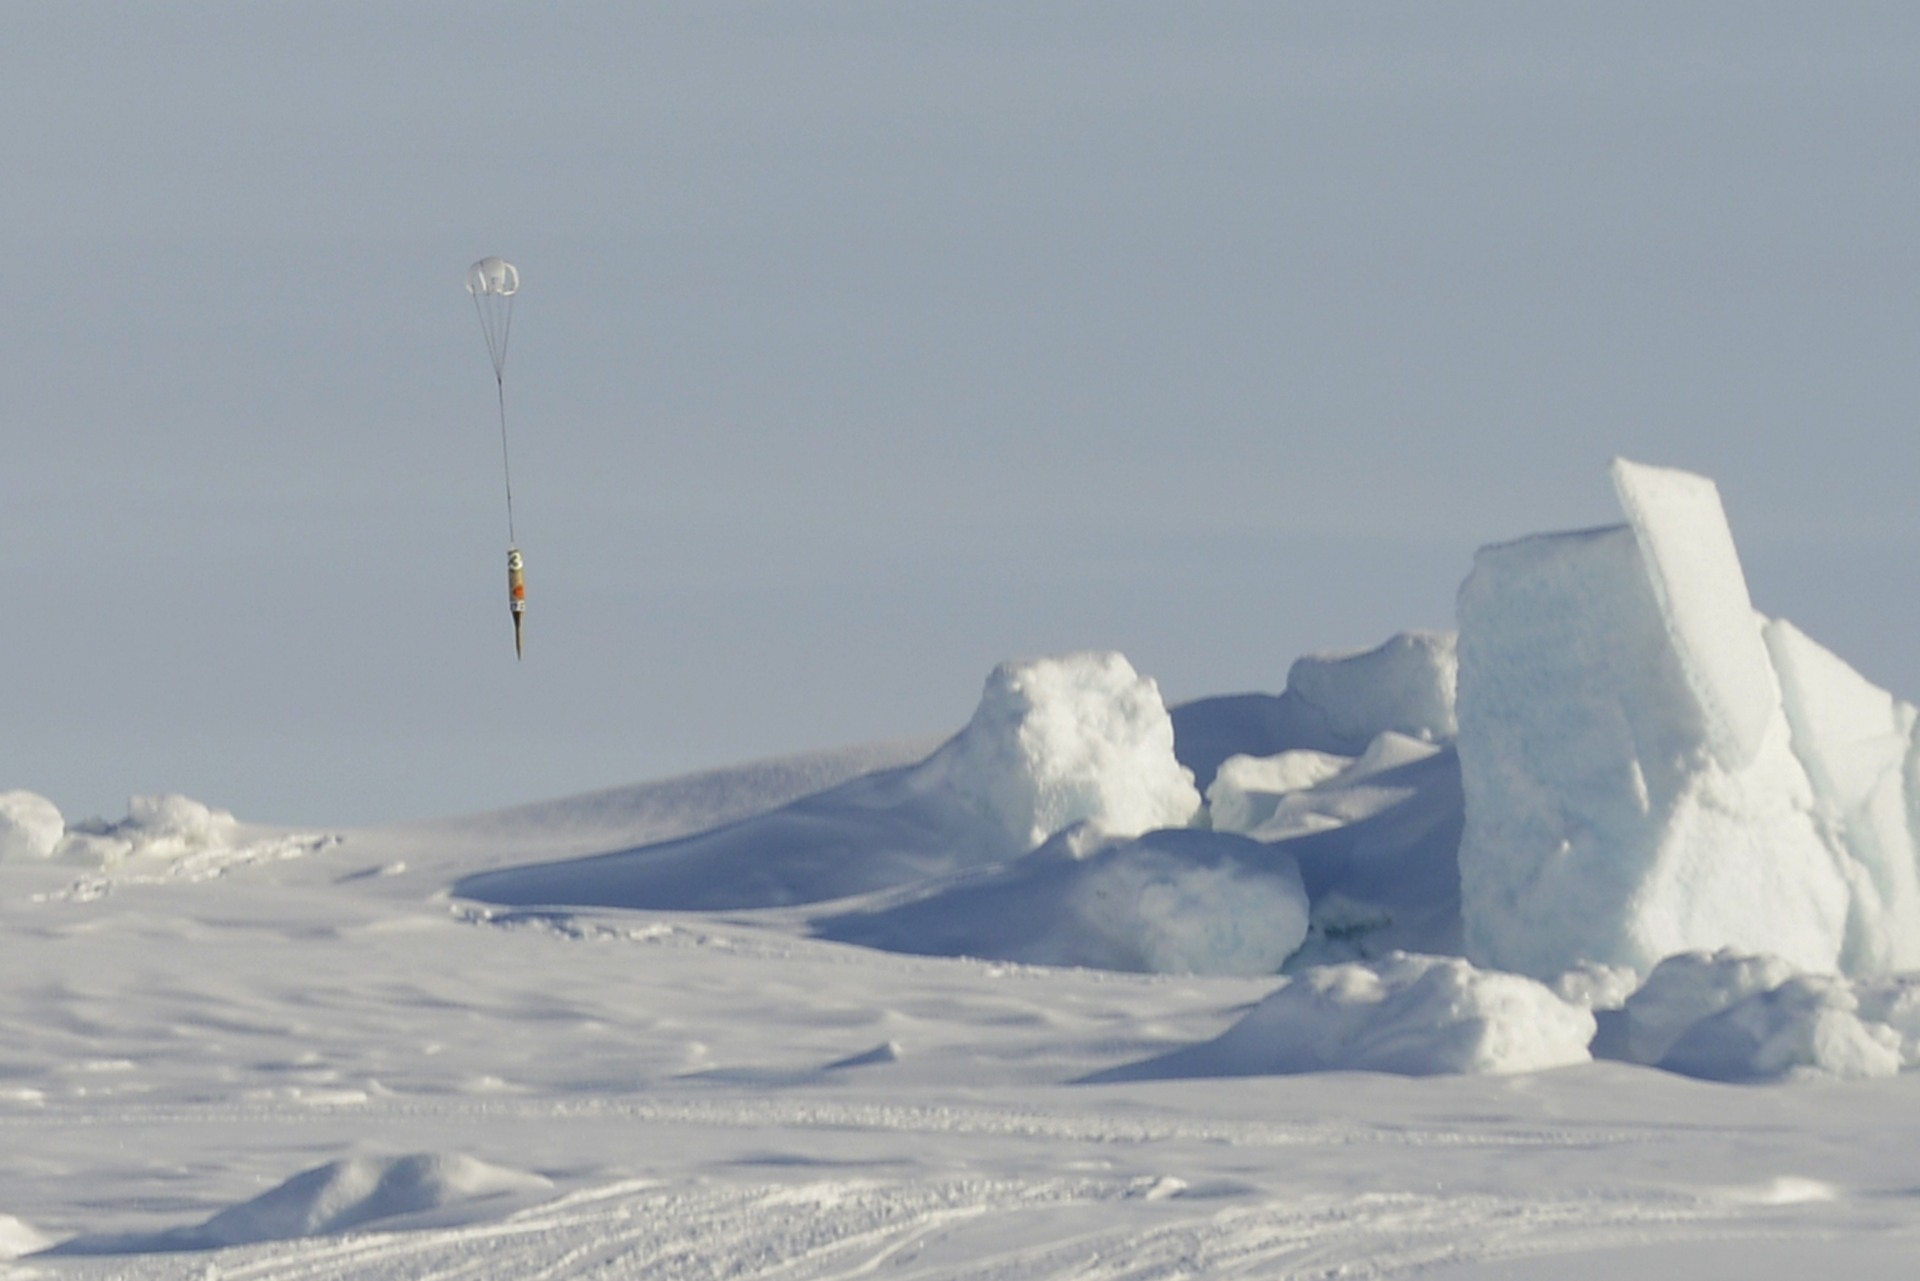 An icepick geobuoy is released and opens its drag chute.